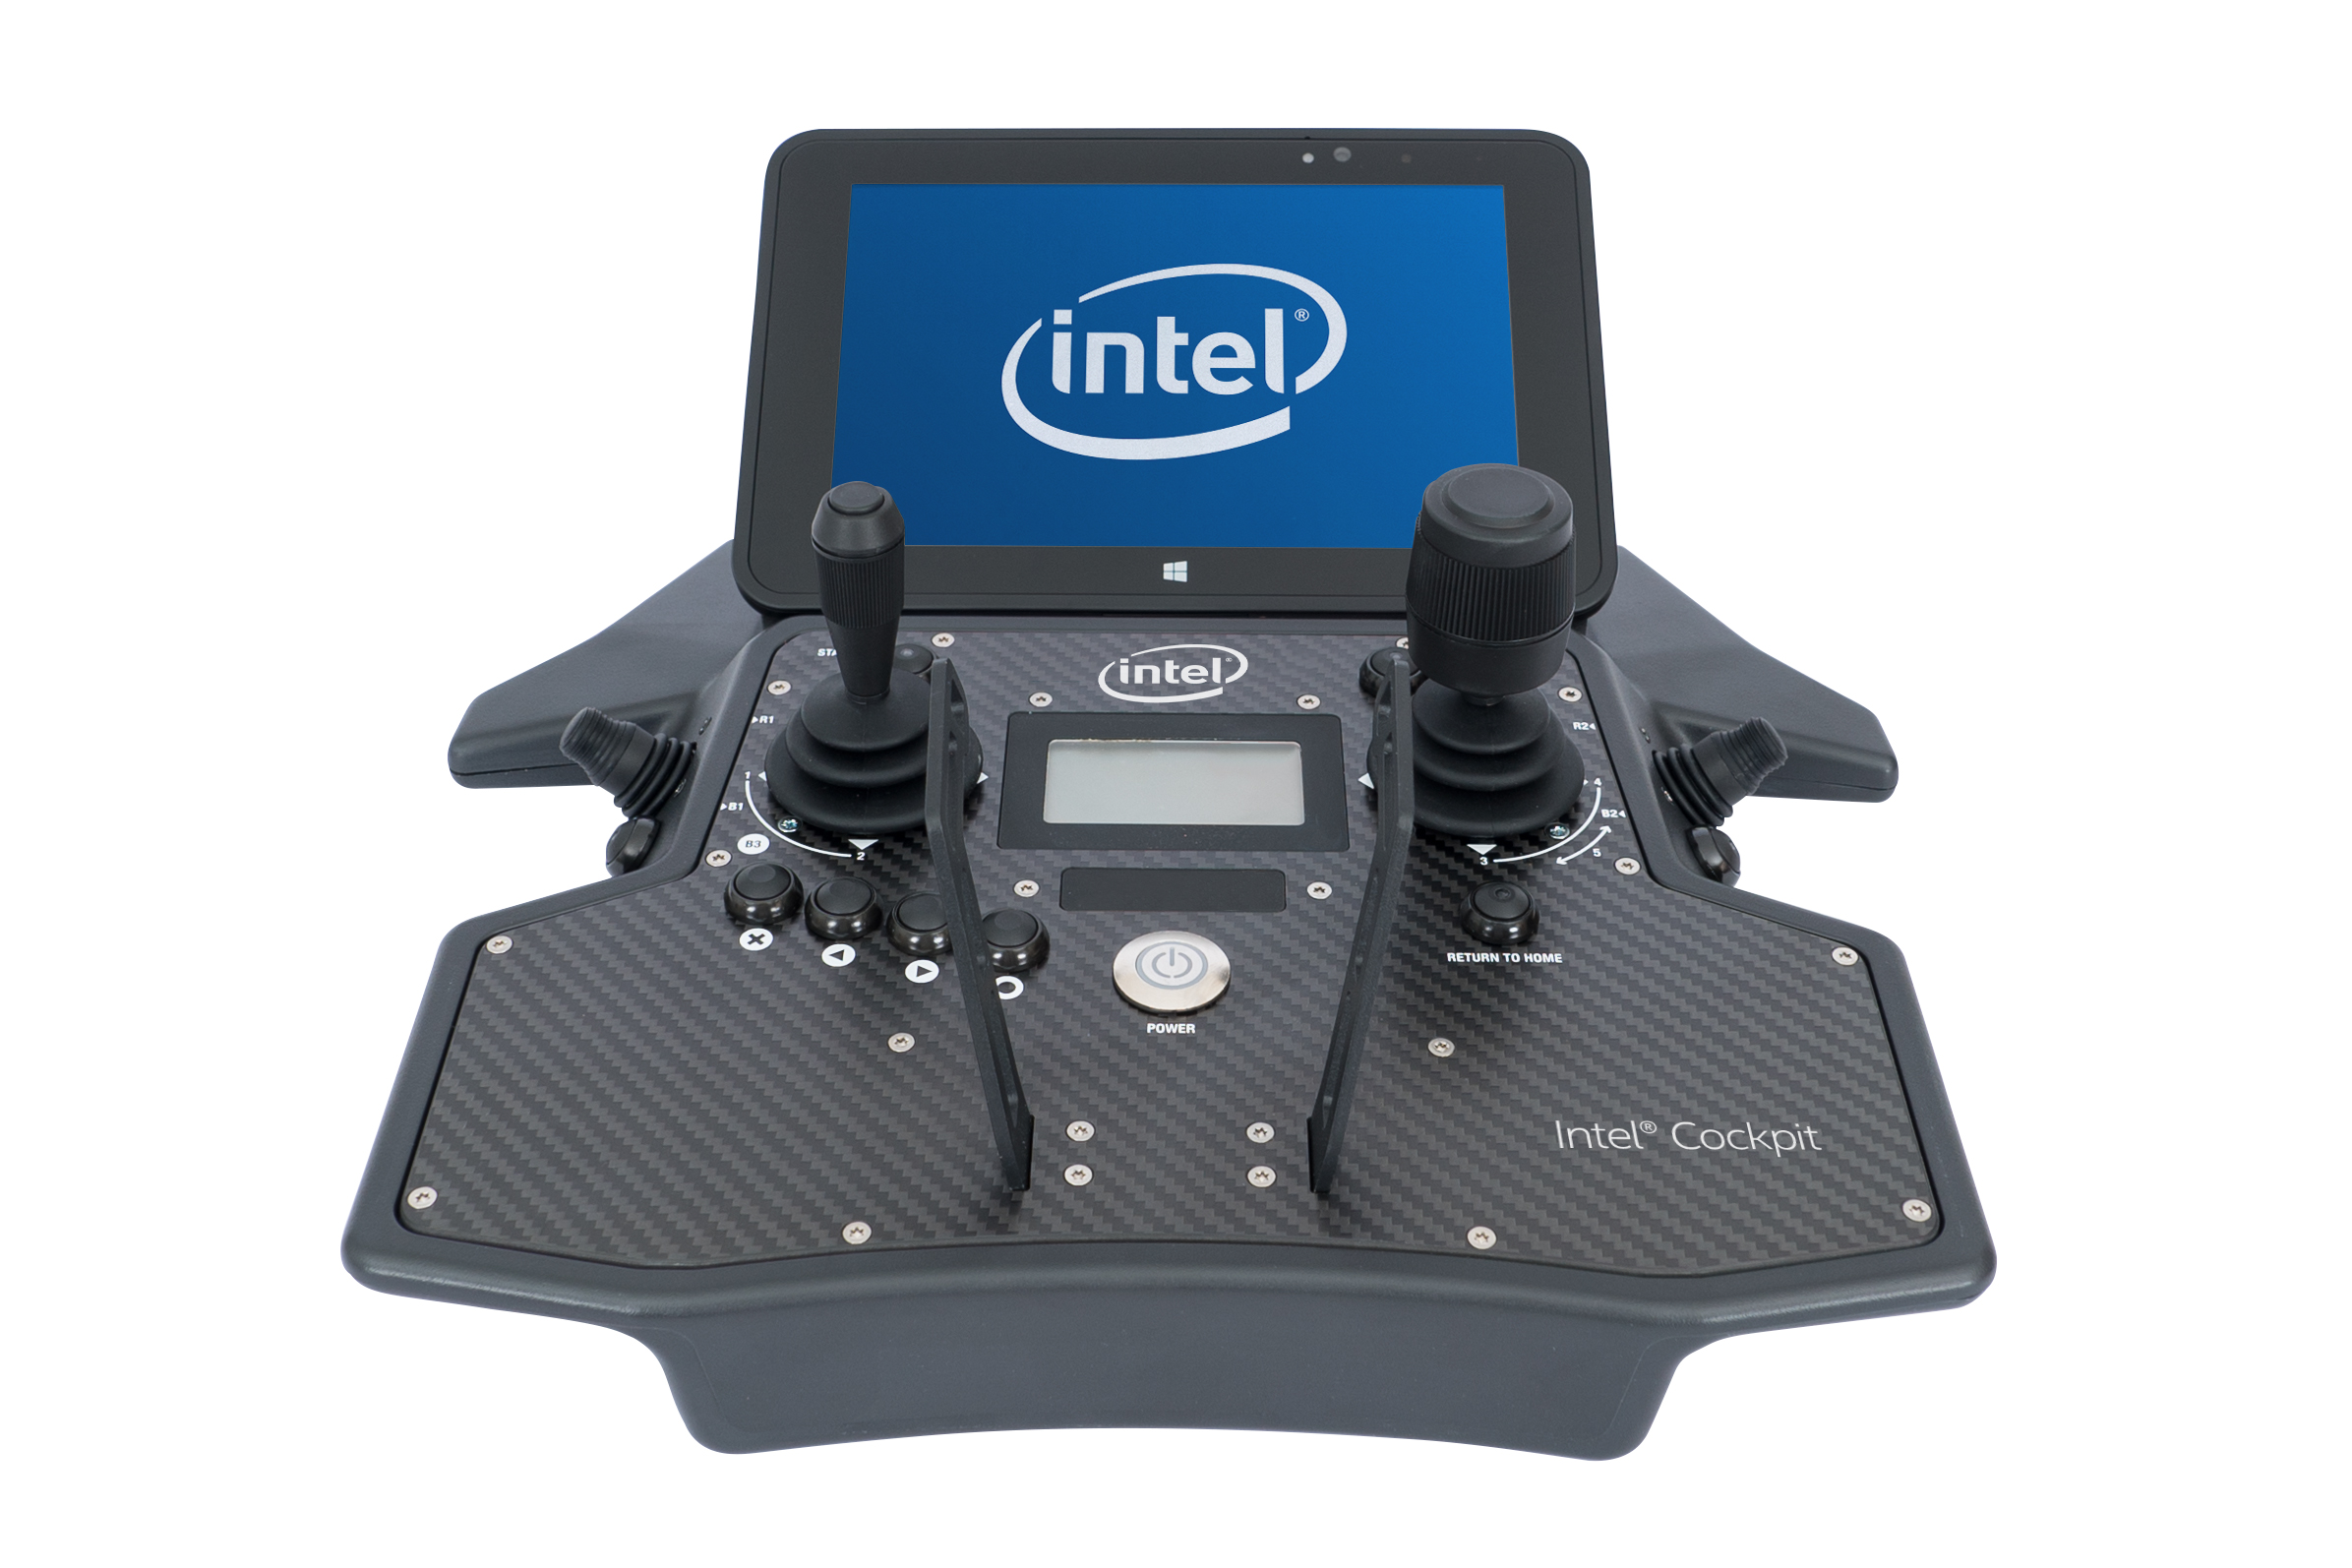 Intel Cockpit, water-resistant user interface, is part of the Intel Falcon 8+ unmanned aerial system. Intel Corporation on Oct. 11, 2016, announced the Intel Falcon 8+, an advanced drone with full electronic system redundancy that is designed with safety, ease, performance and precision for the North American markets. (Credit: Intel Corporation)